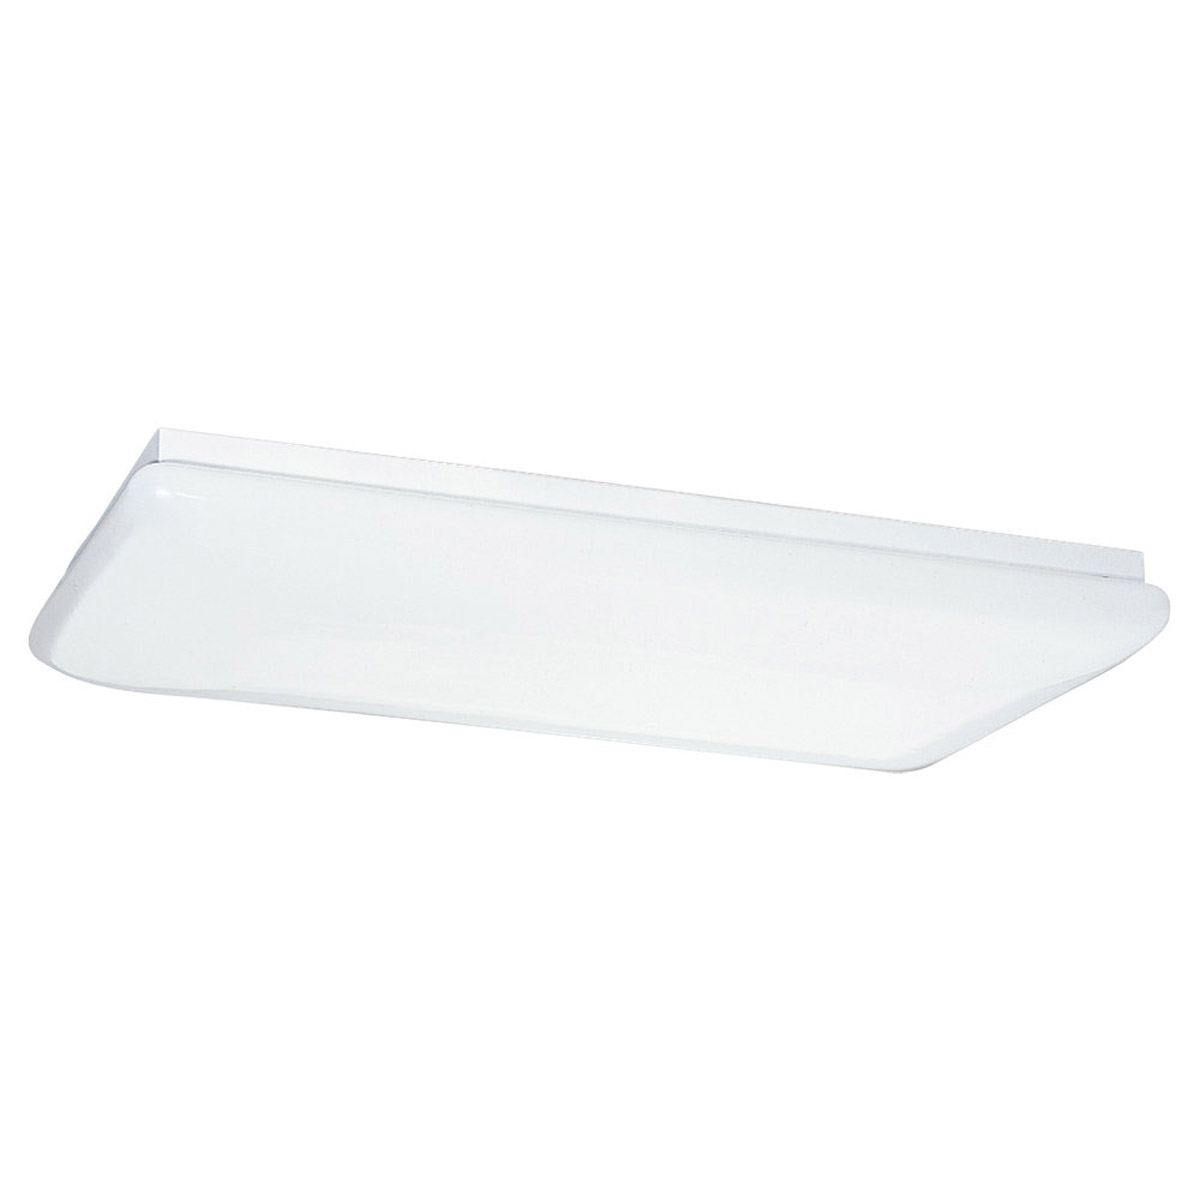 Sea Gull Lighting Signature 4 Light Fluorescent Trim Only in White Plastic 5913-68 photo